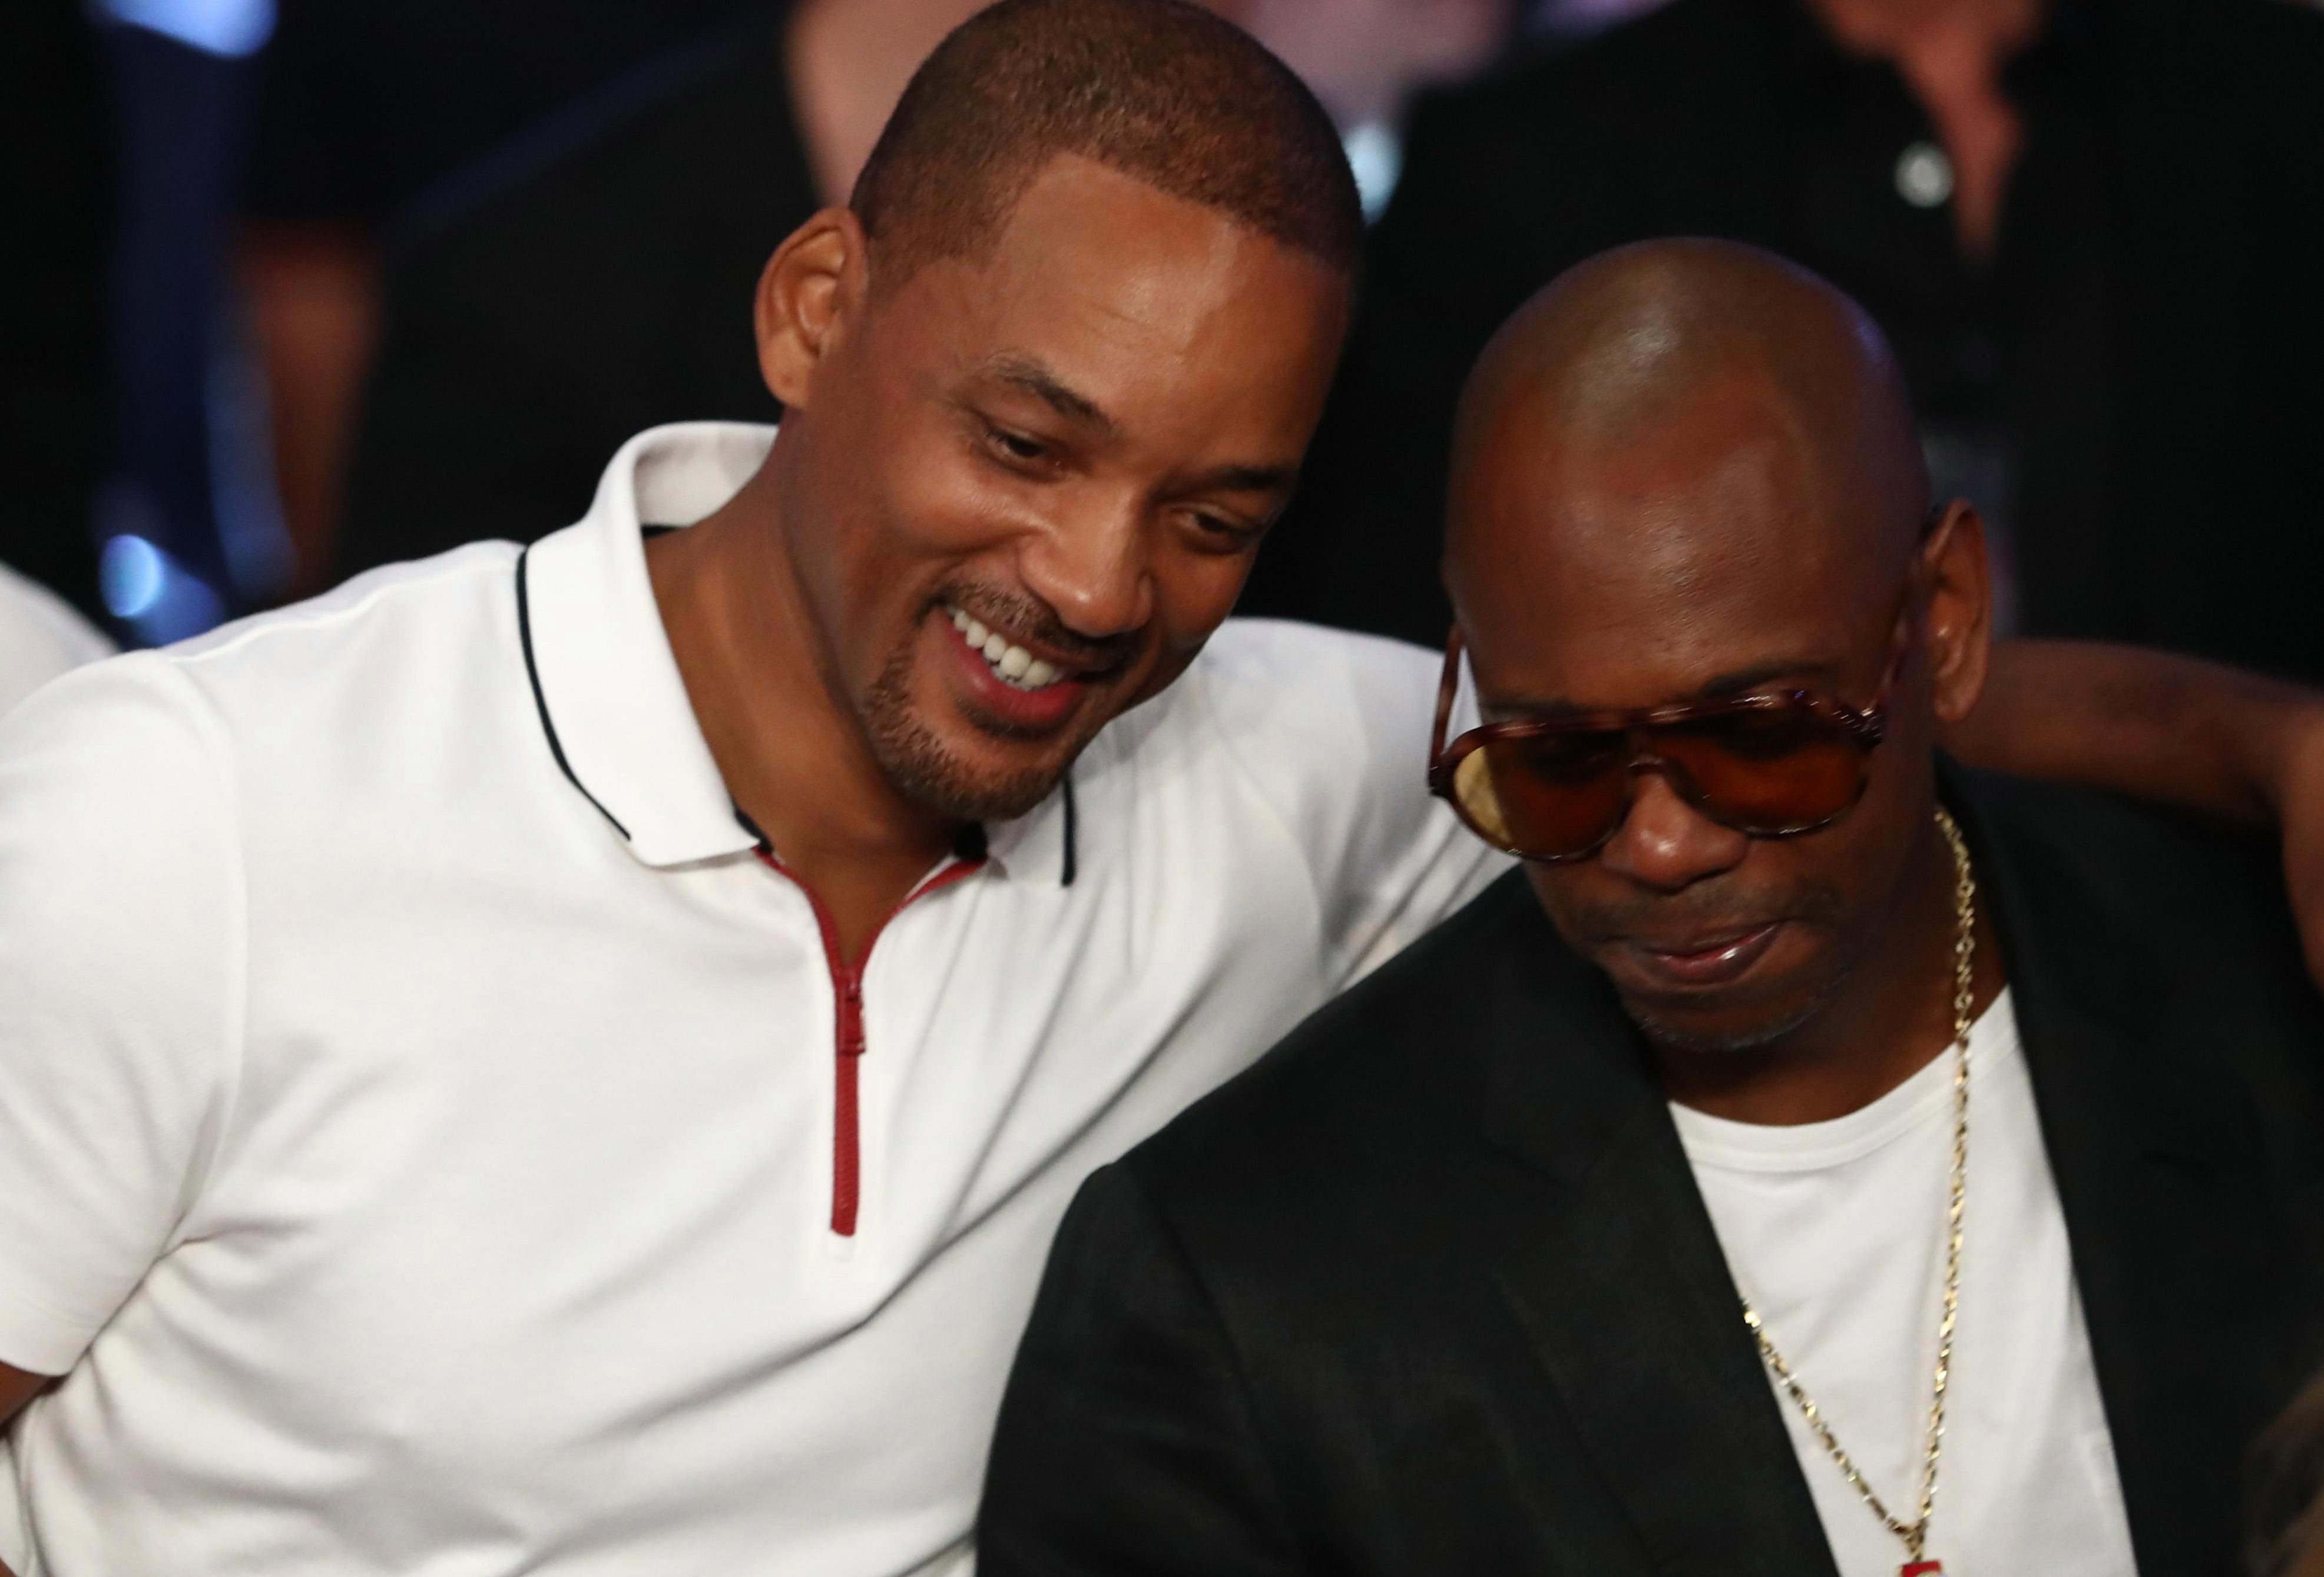 Will Smith, left, and comedian Dave Chapelle were also in attendance on the night